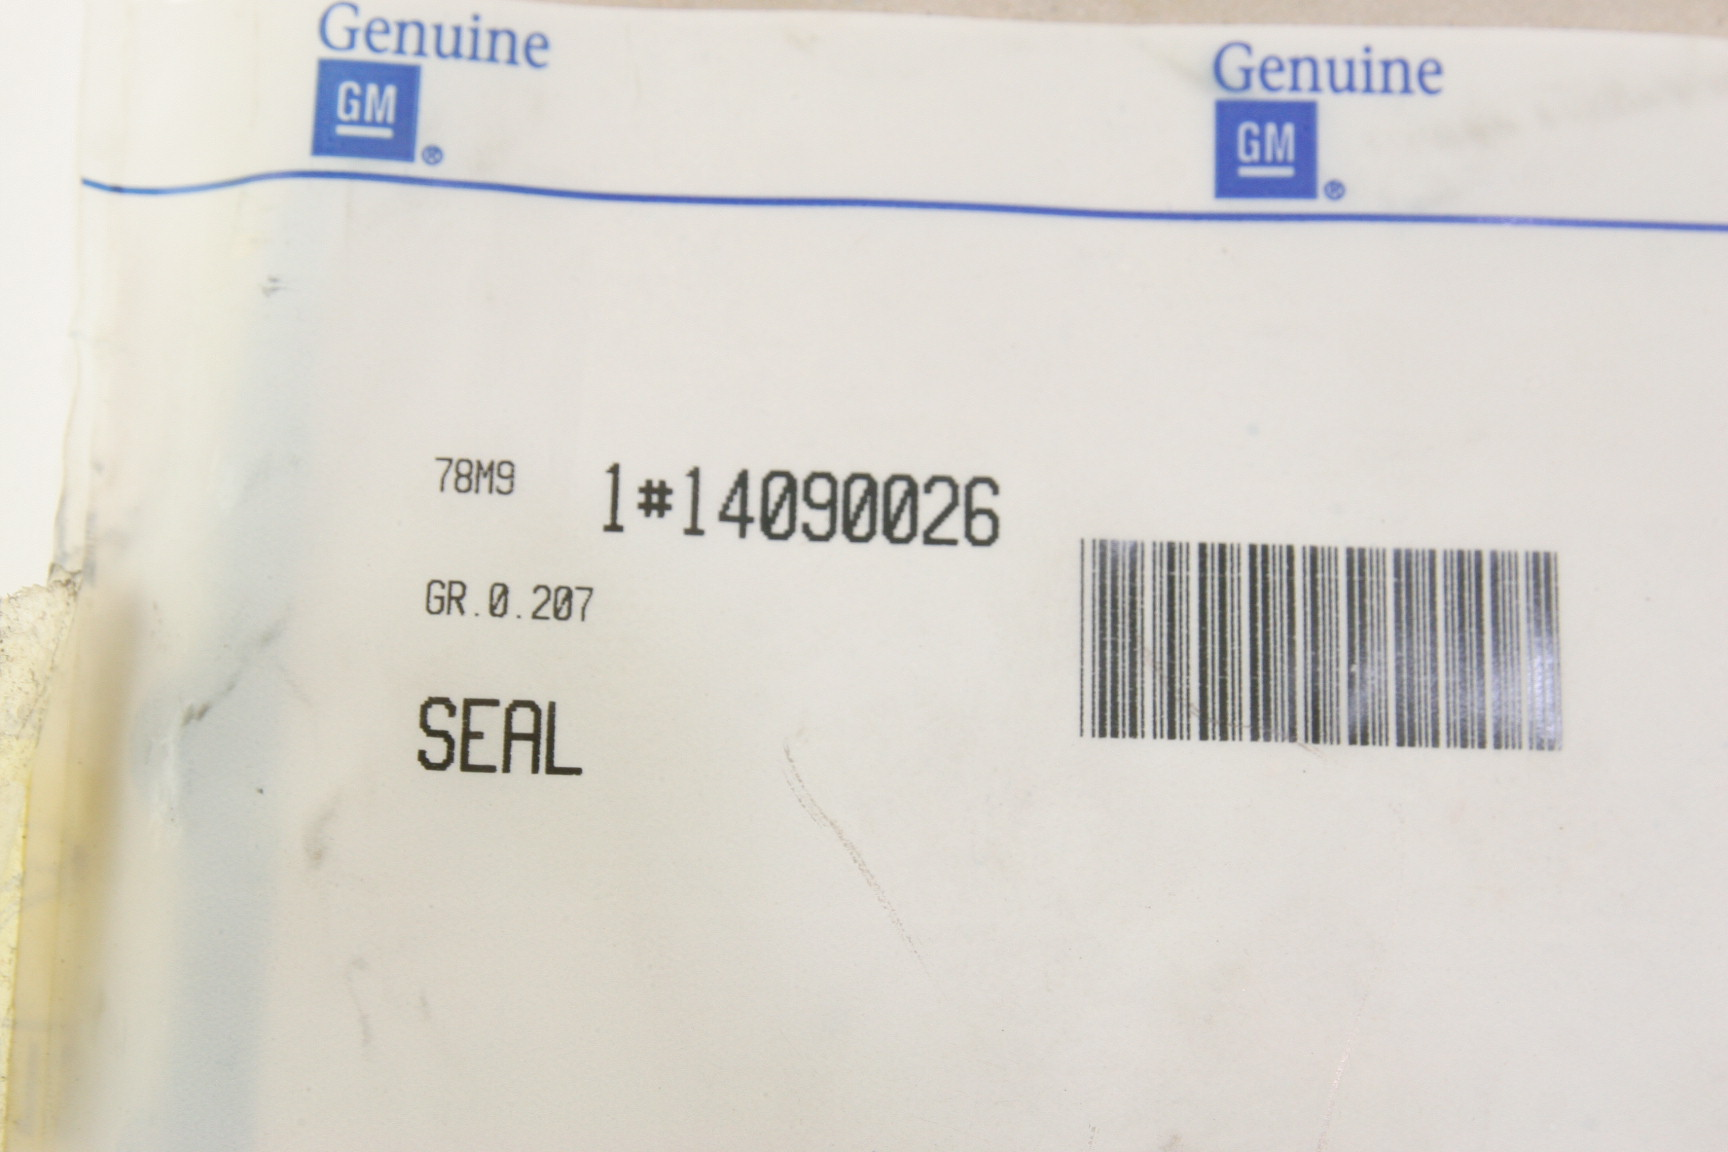 **** New OEM Genuine GM ACDelco 14090026 Cover Gasket Free Shipping - image 2